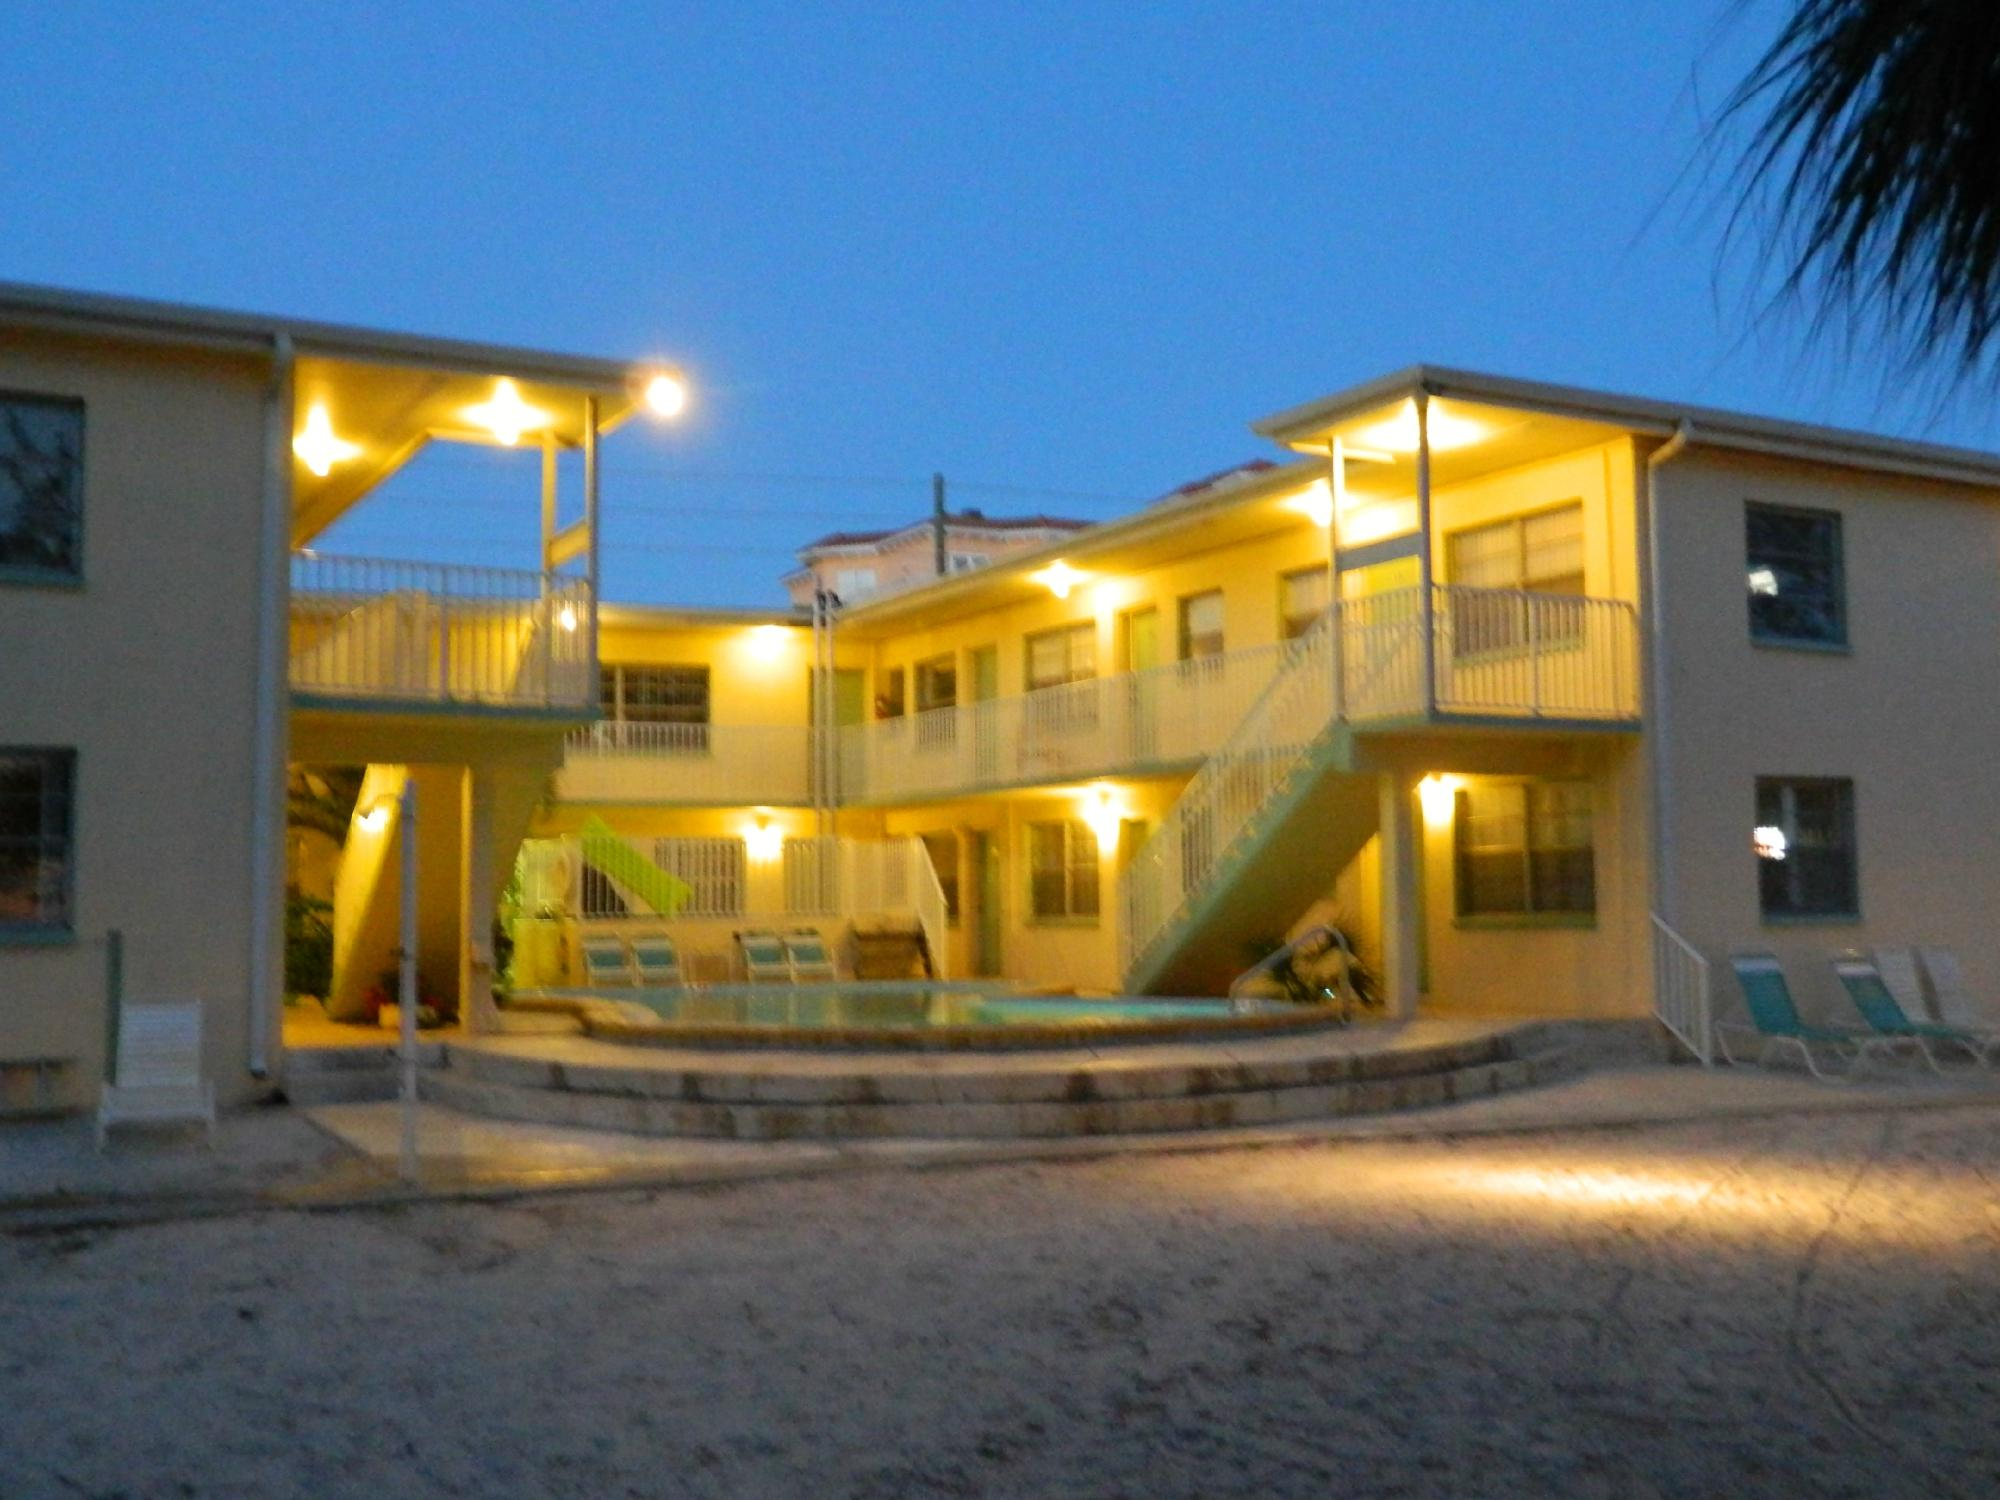 The Molloy Gulf Front Motel and Cottages